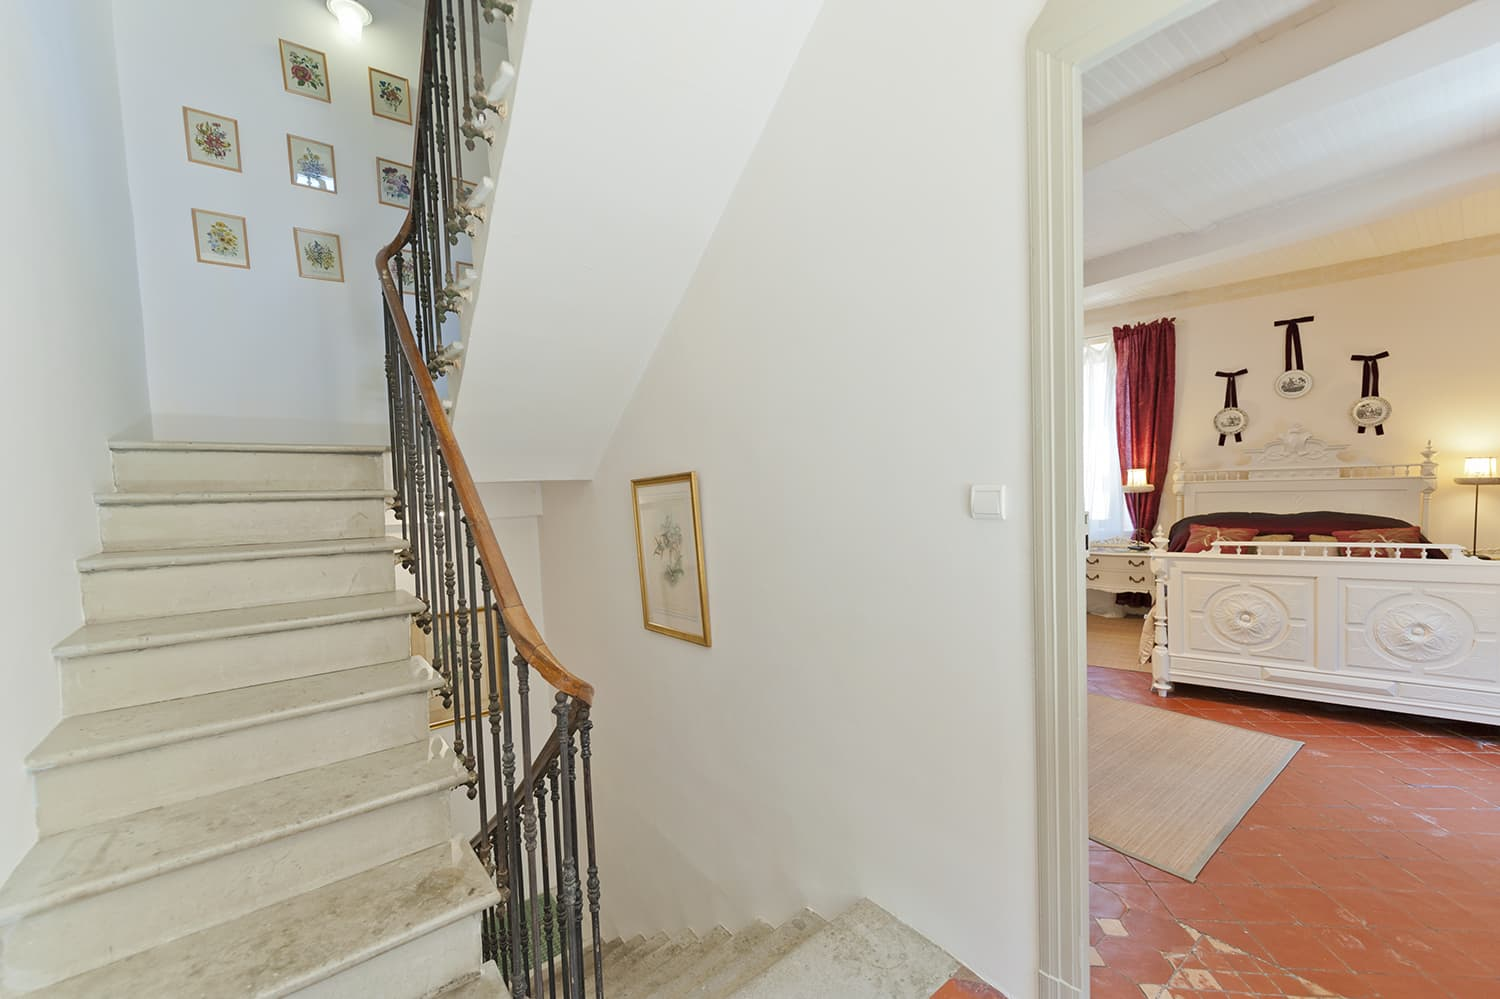 Staircase and bedroom in Languedoc holiday home